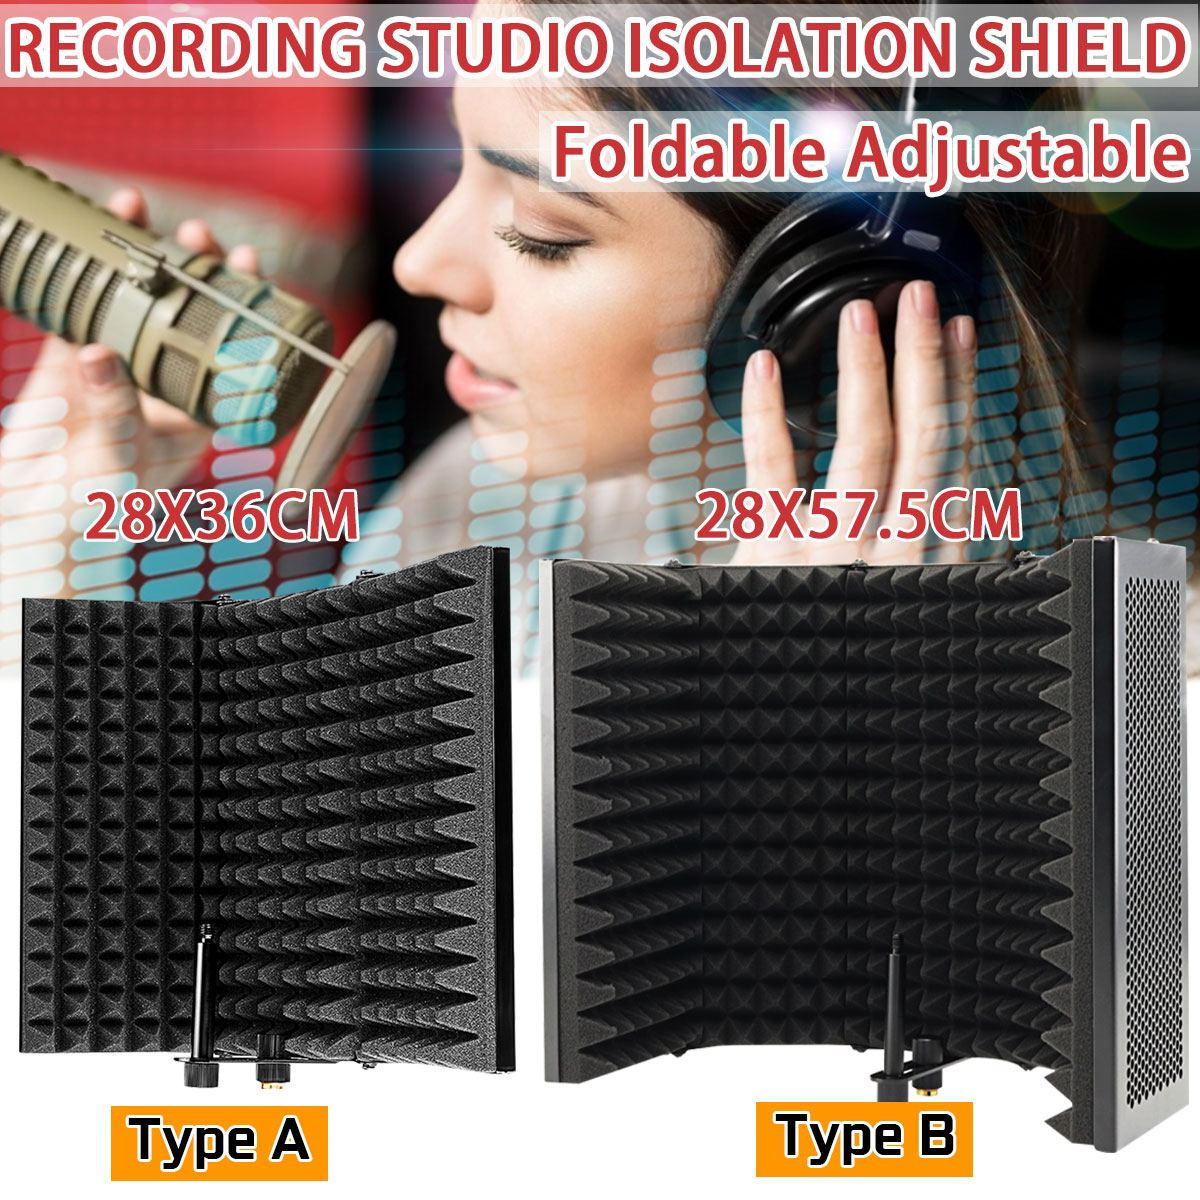 Microphone-Accessories Isolation-Shield Recording Foams-Panel Studio Acoustic Live-Broadcast title=